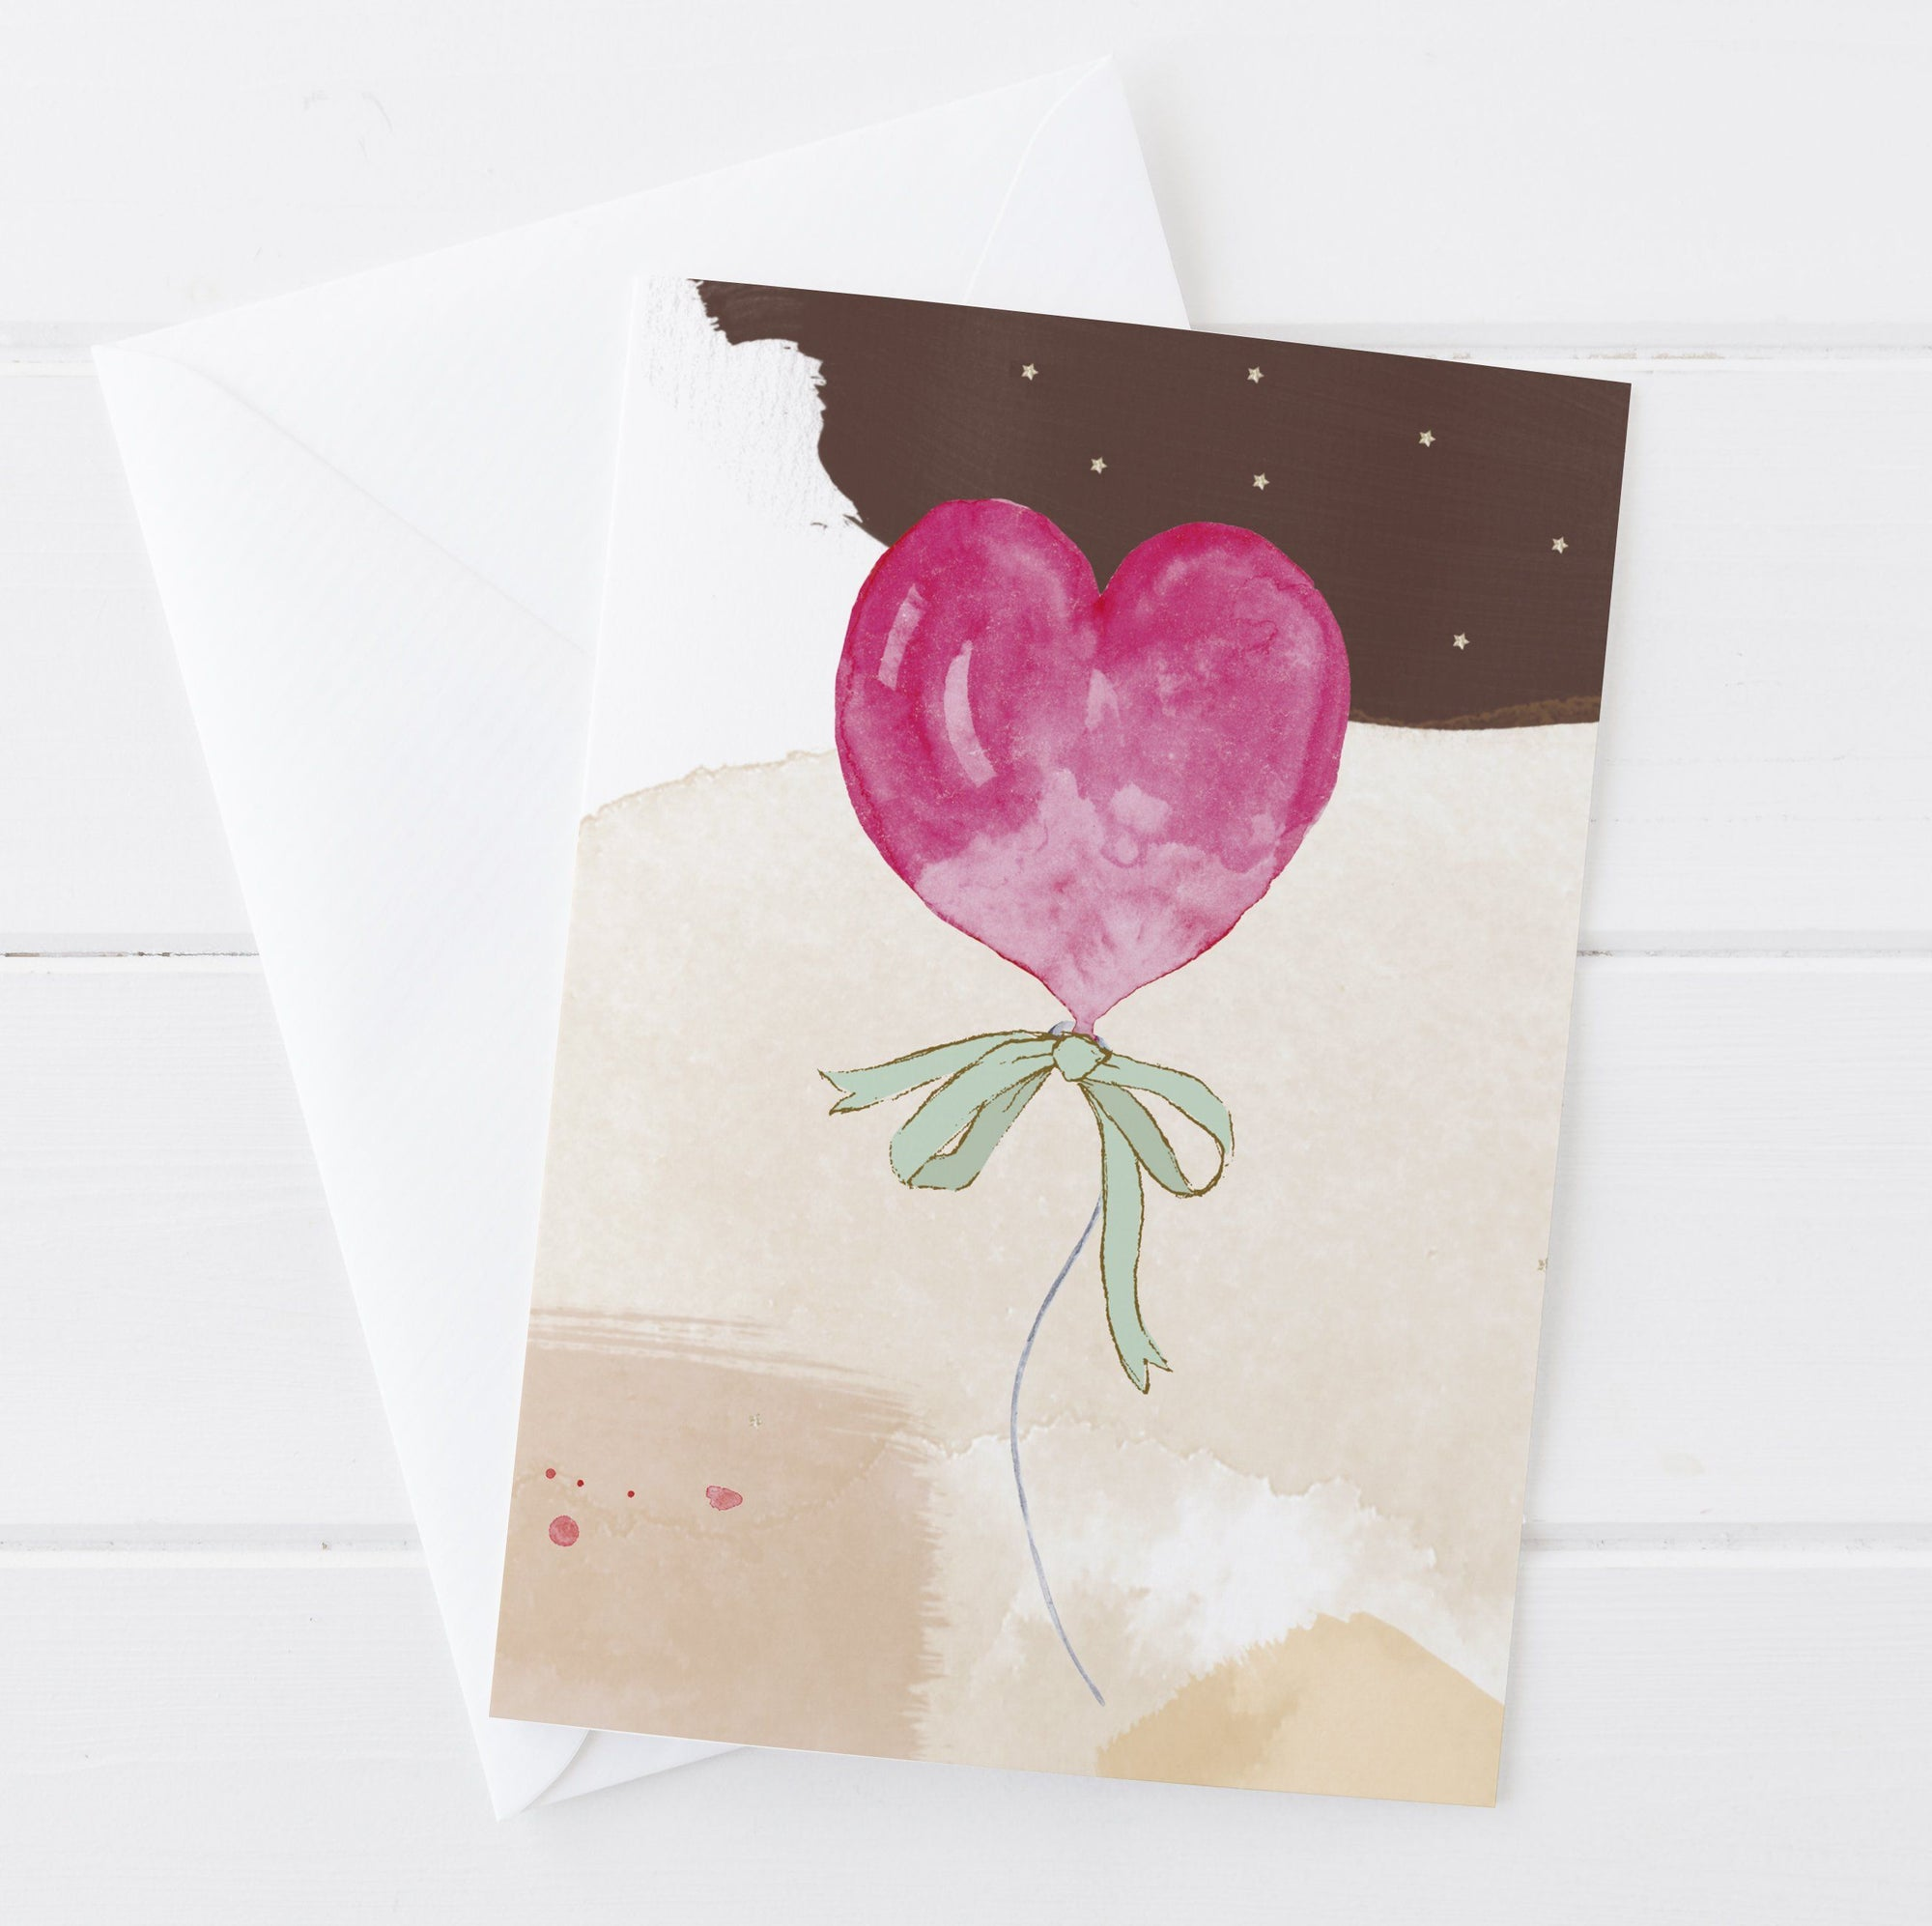 Balloon Heart Greetings Card